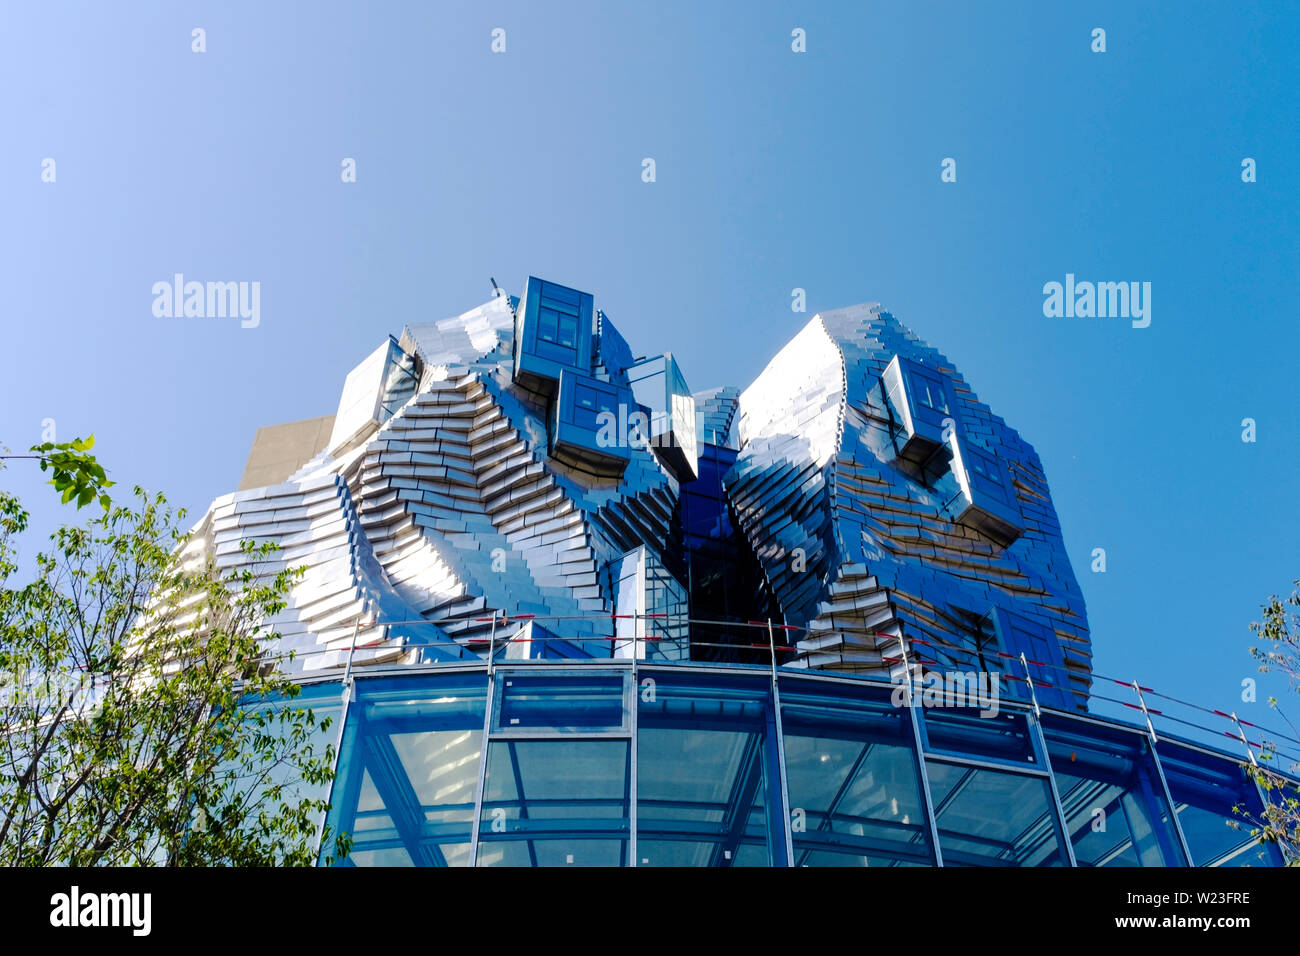 Luma Luma Stock Photos & Luma Luma Stock Images - Alamy